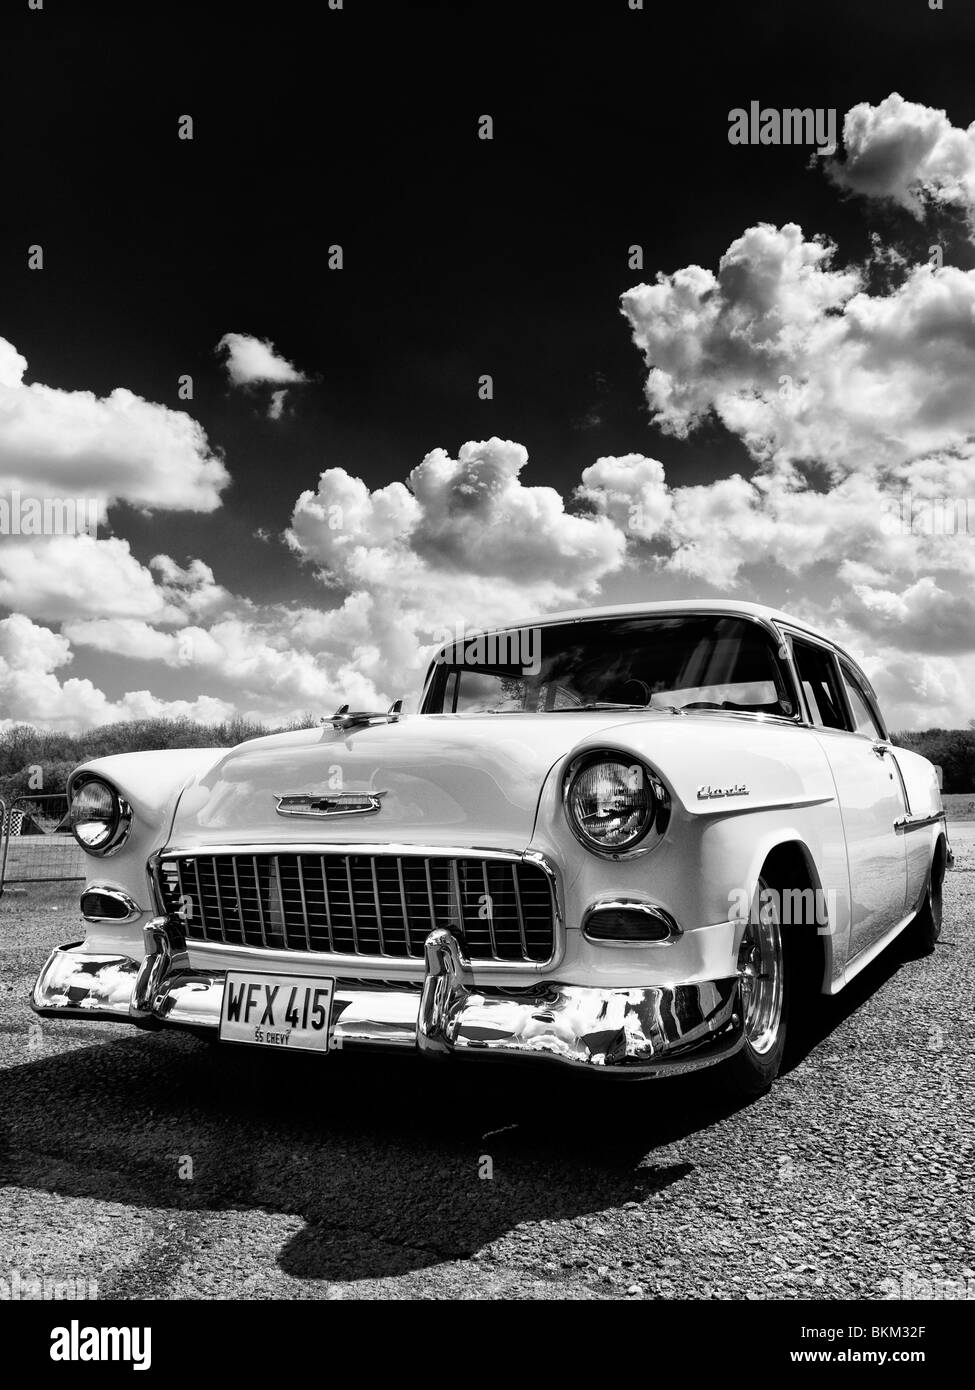 1955 Chevrolet, Bel Air. Chevy. Classic American car. Monochrome - Stock Image